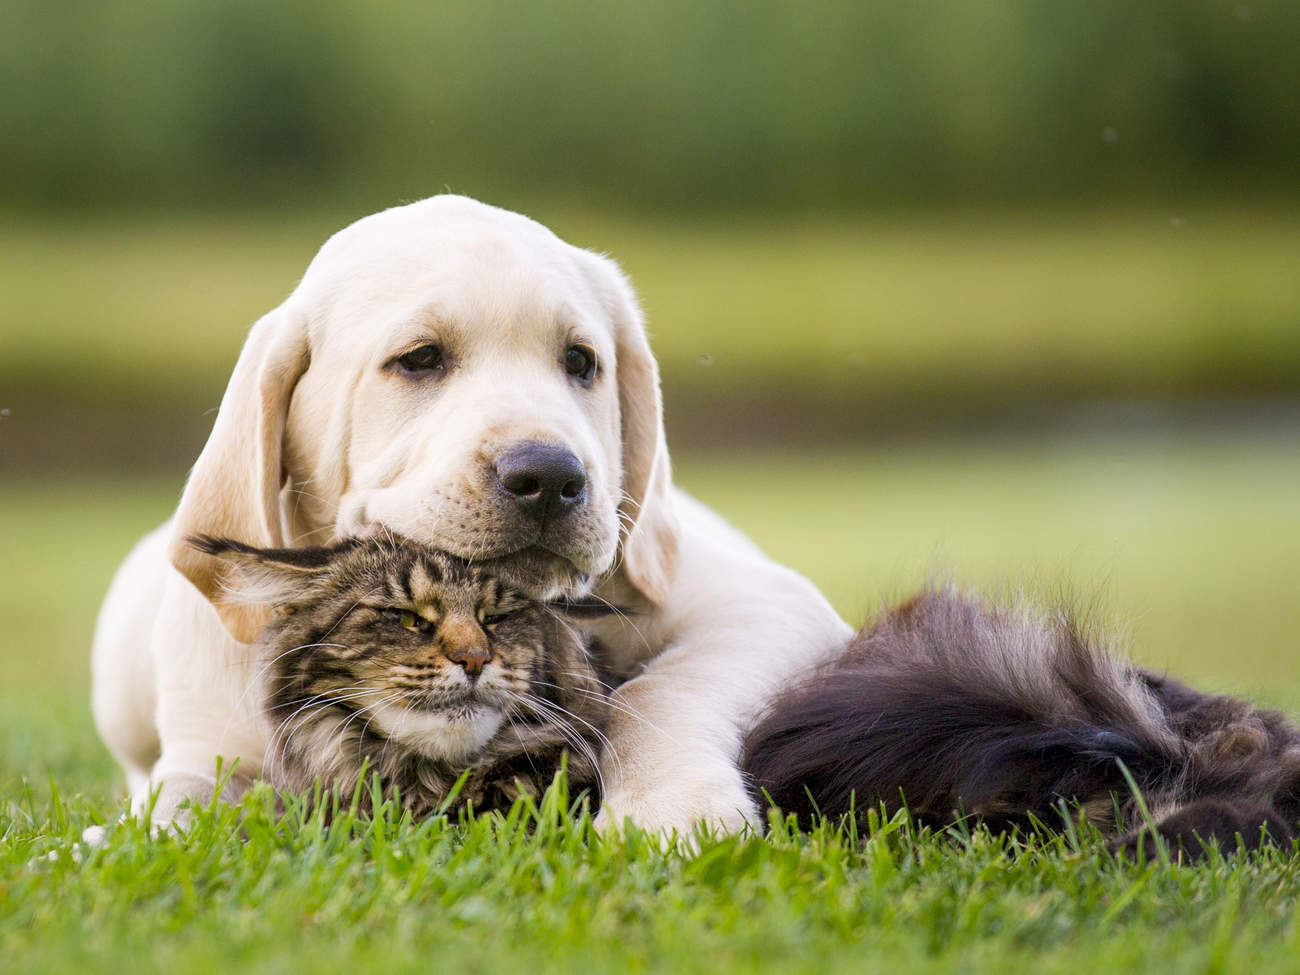 Puppy and Kitten Snuggle